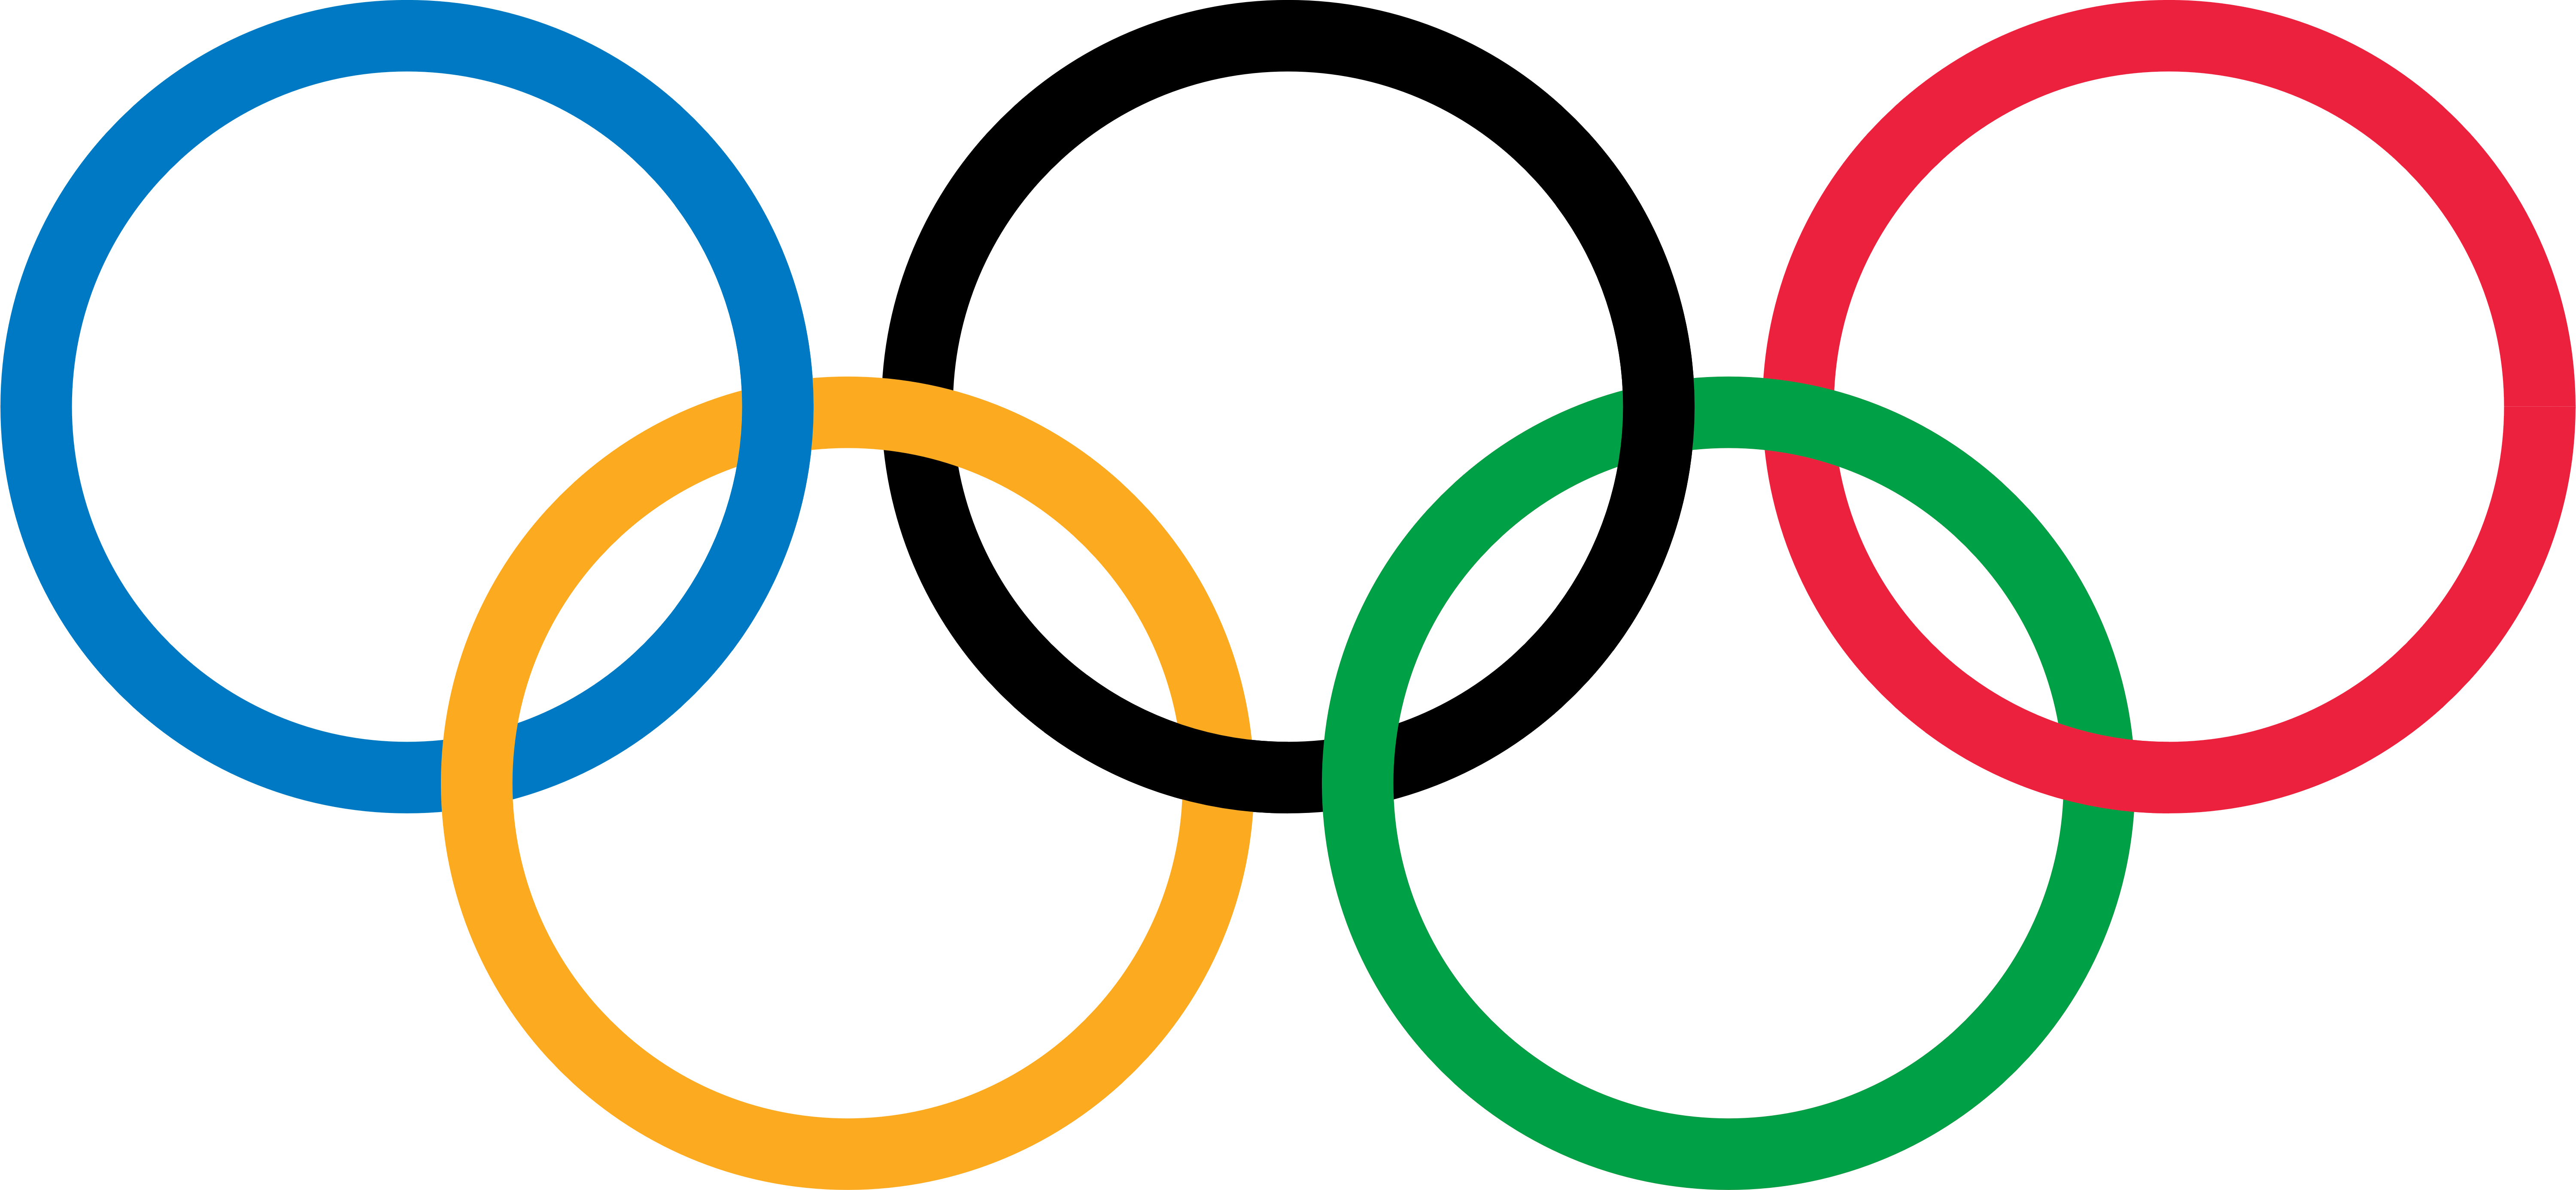 Download Olympic Symbols PNG Image for Free Olympic logo